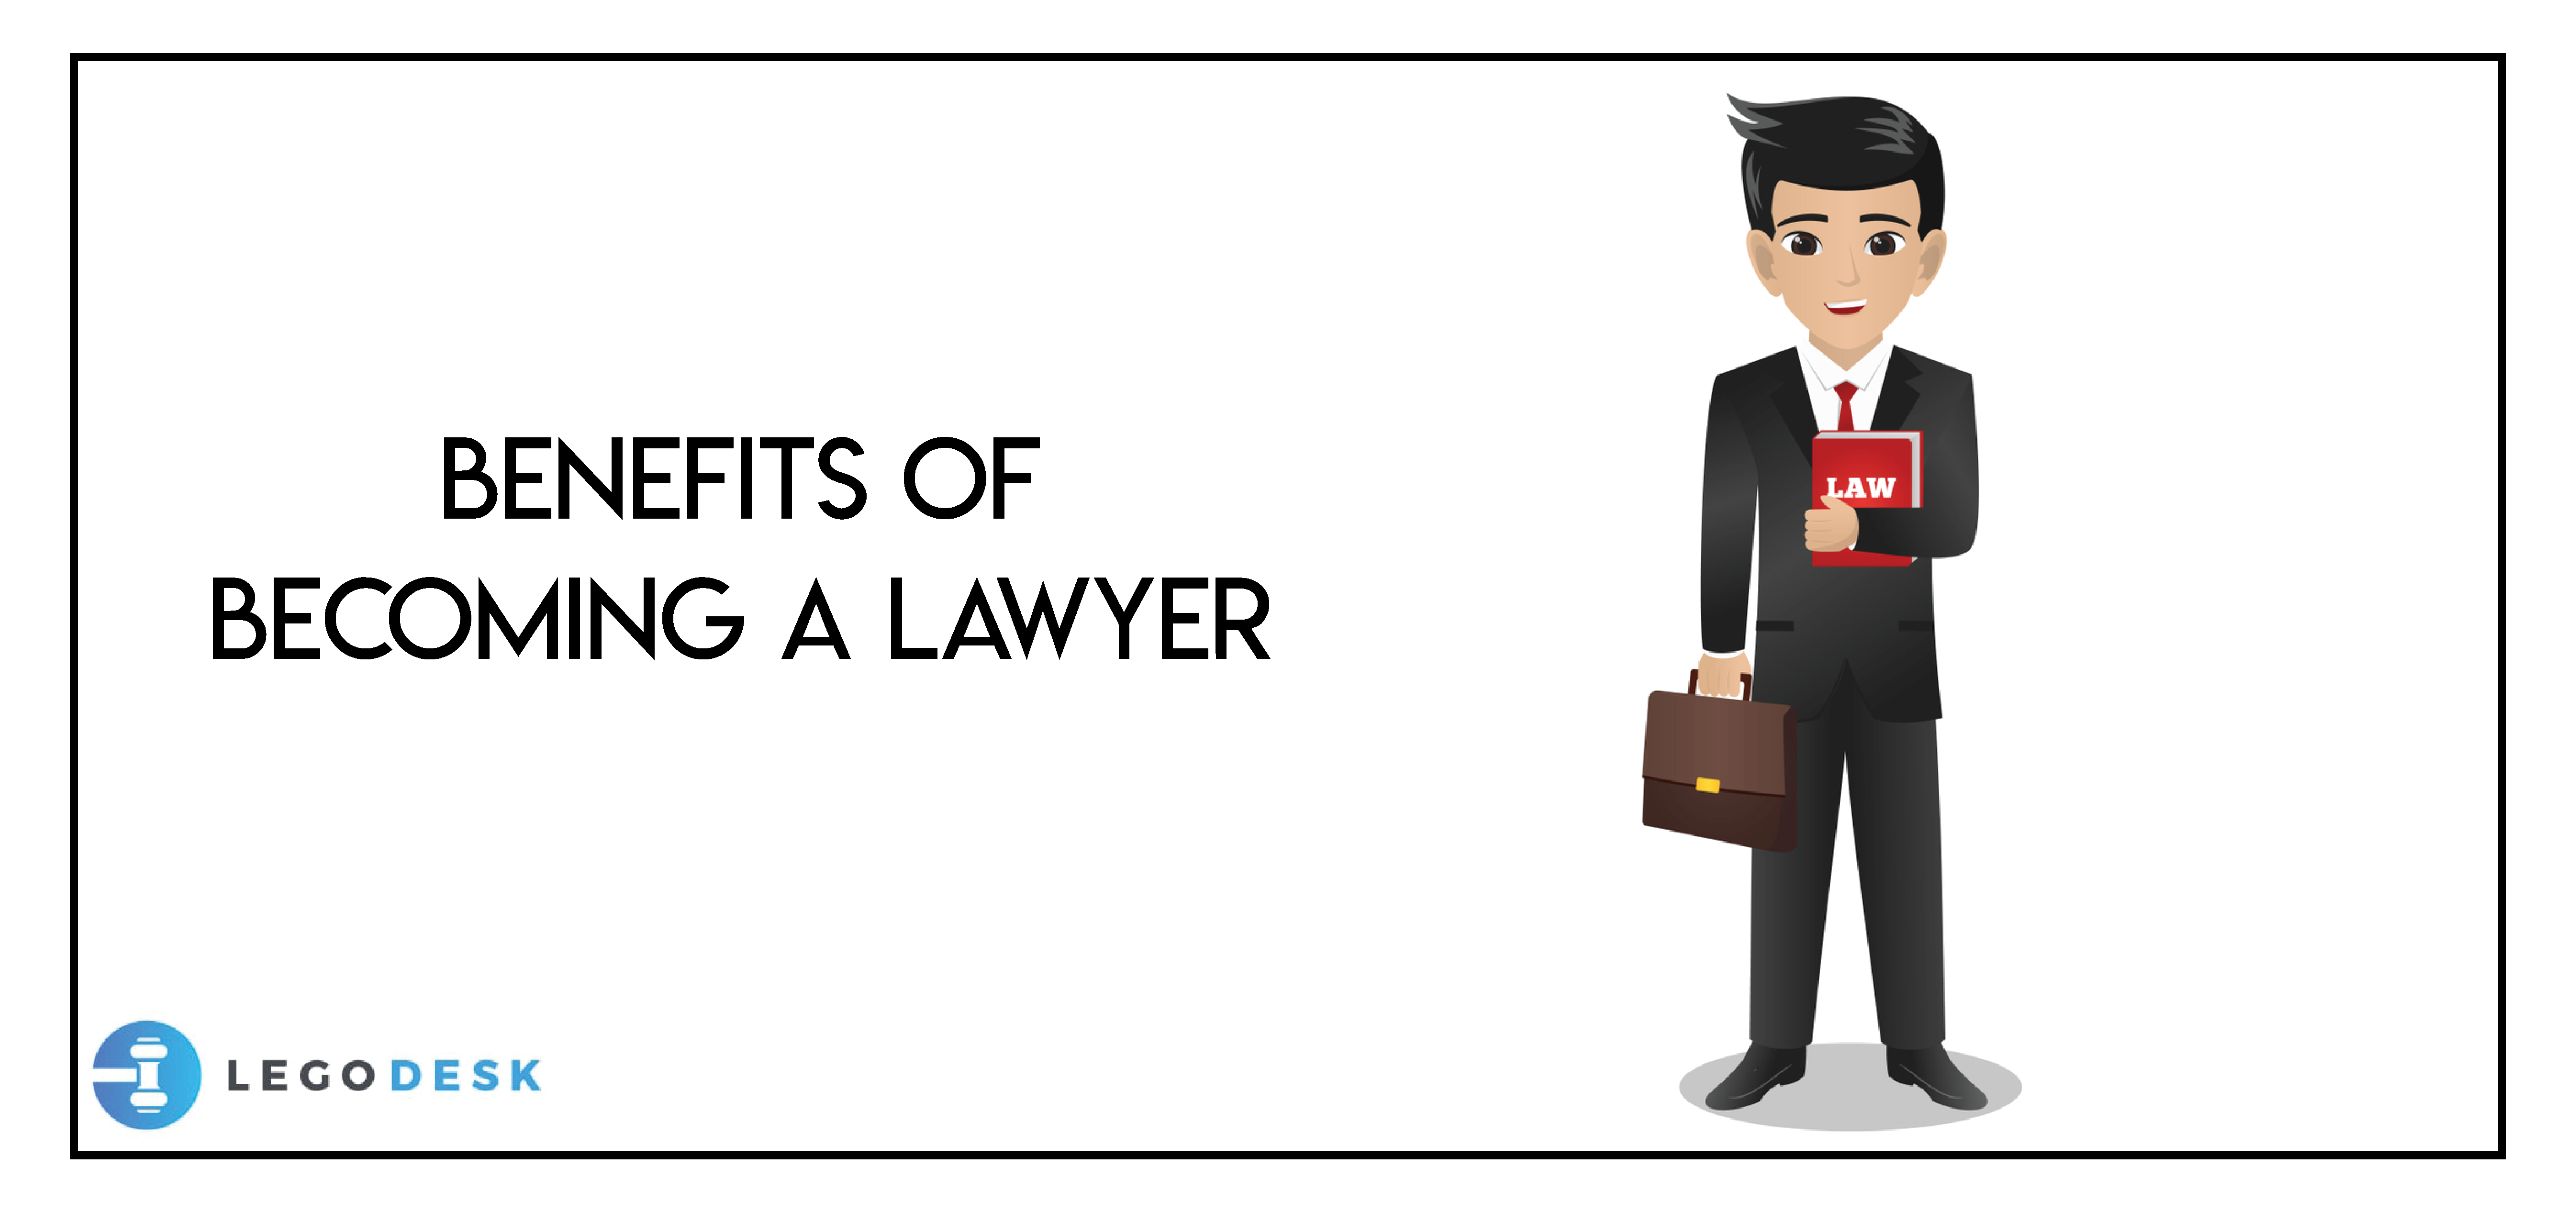 Benefits of Becoming a Lawyer